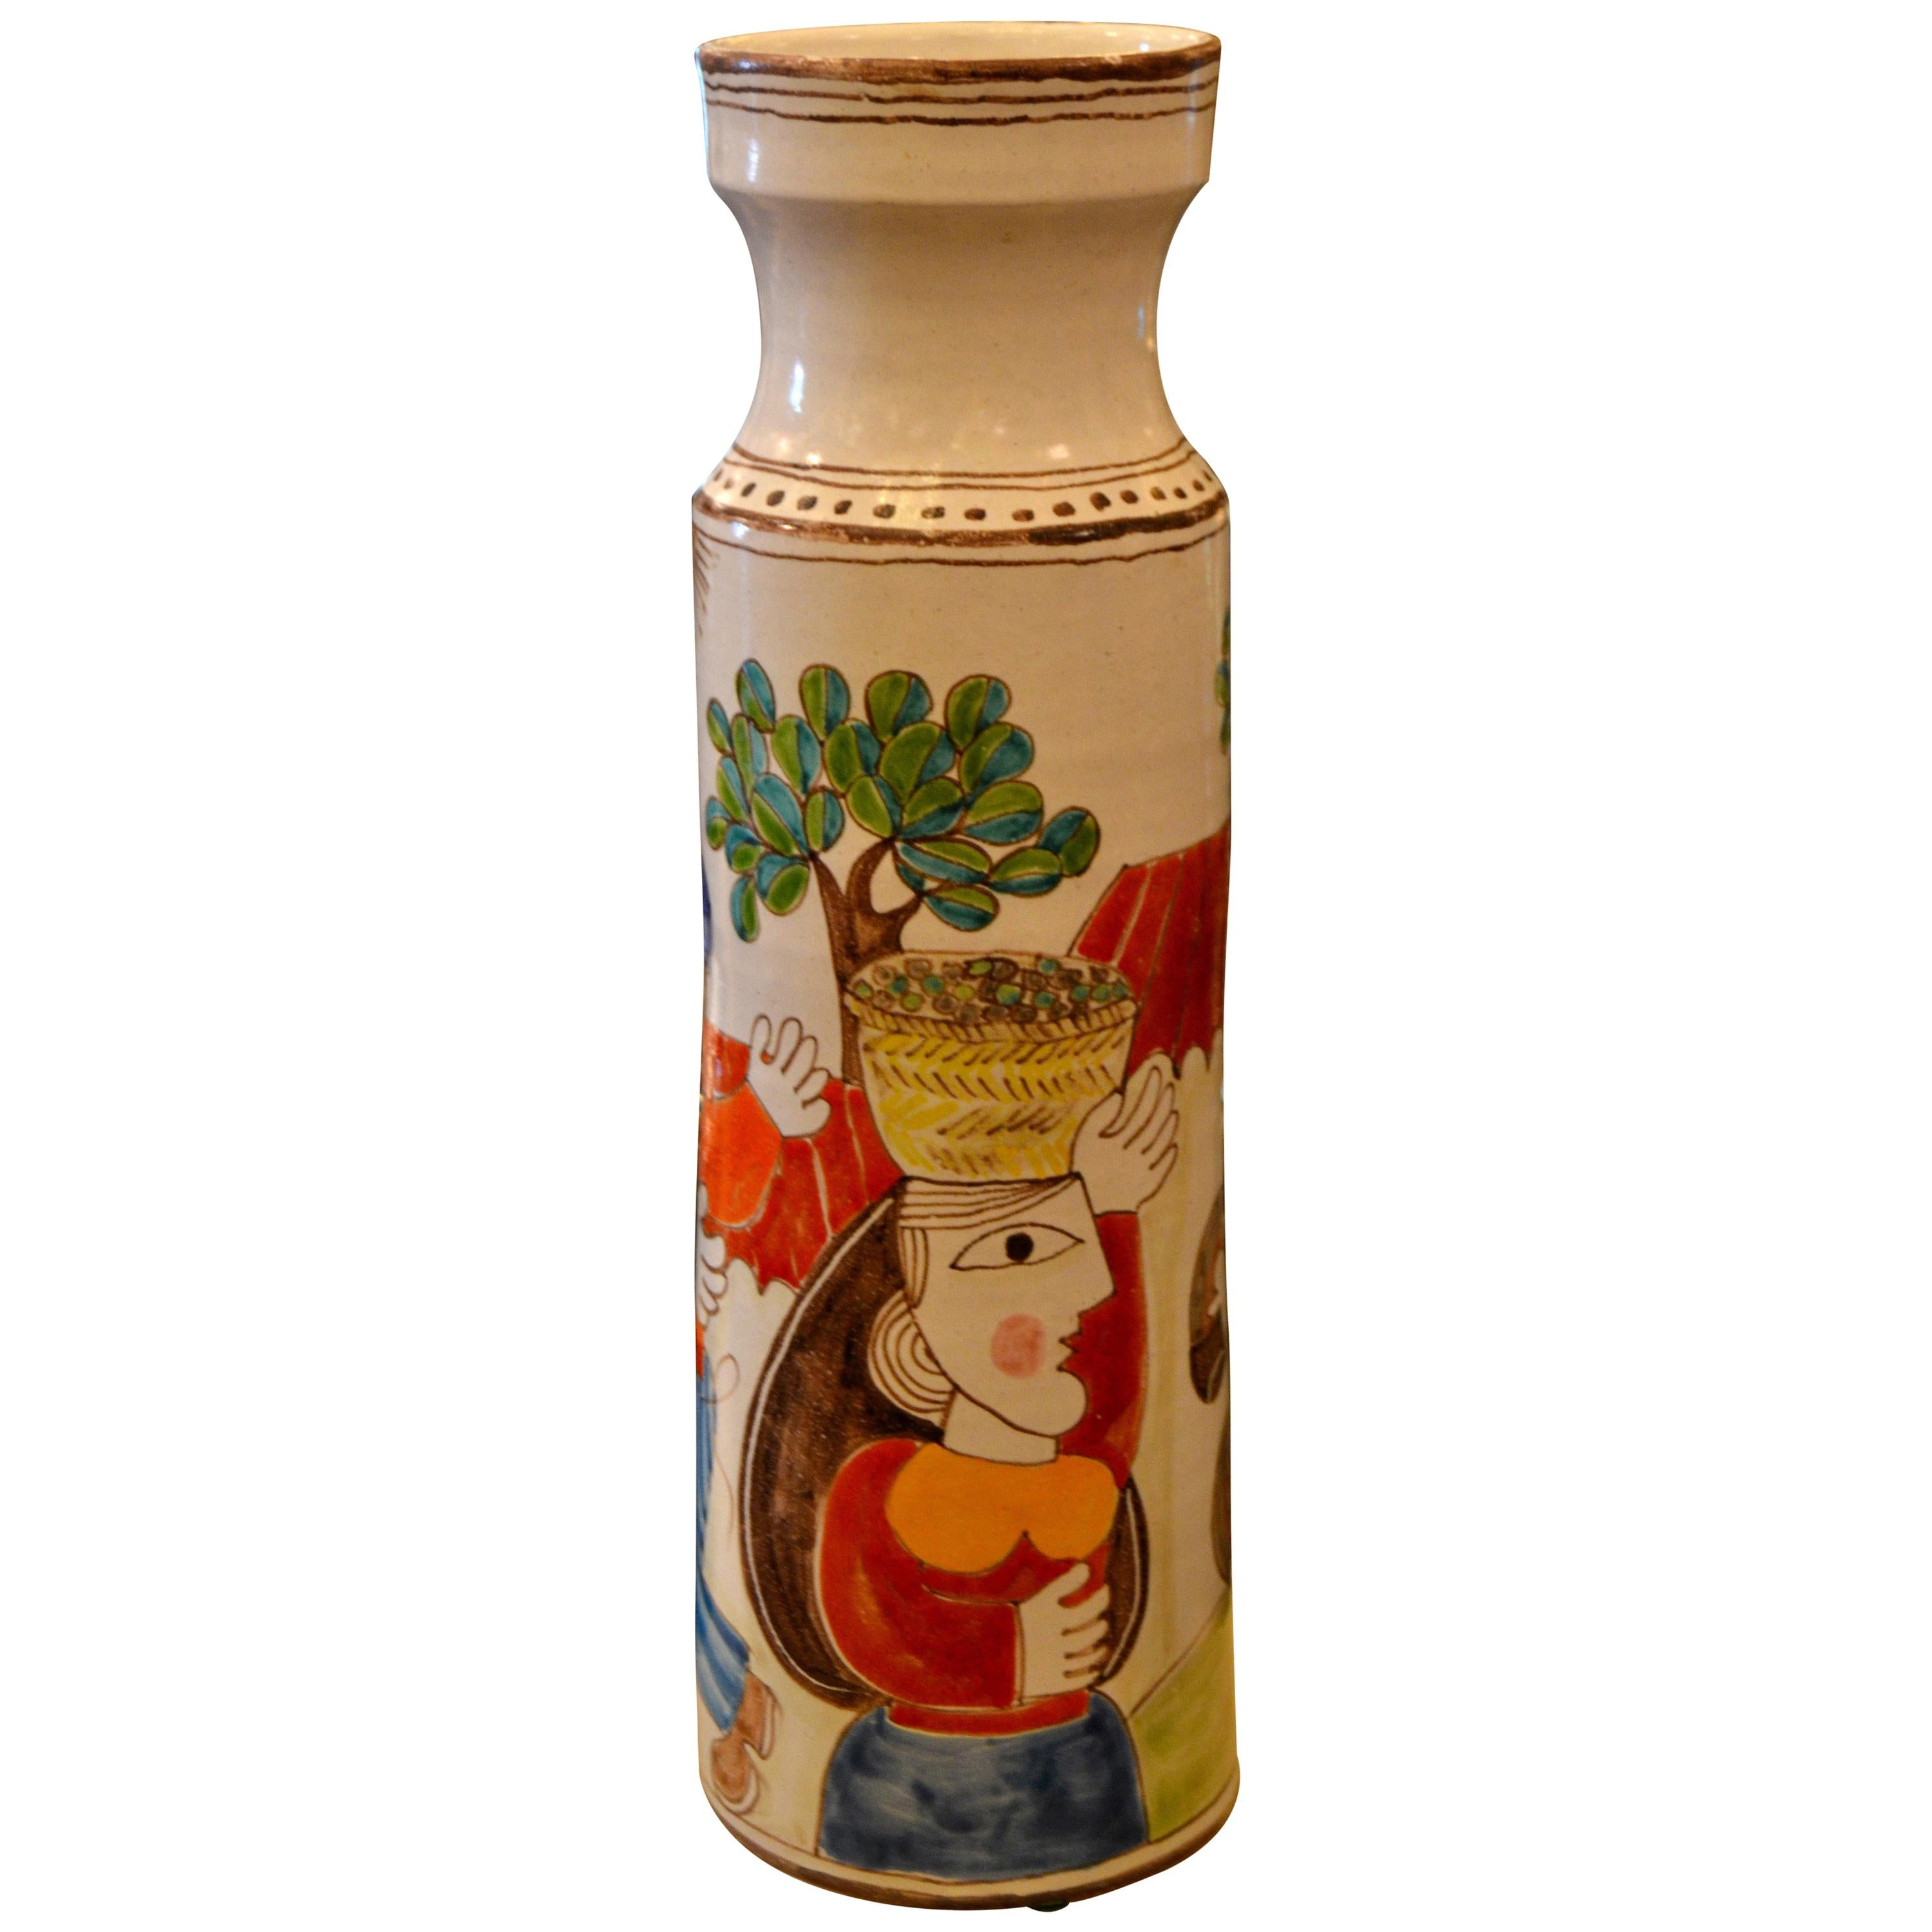 Desimone Hand Painted Tall Art Pottery Flower Vase, Vessel, Olive Picking, Italy